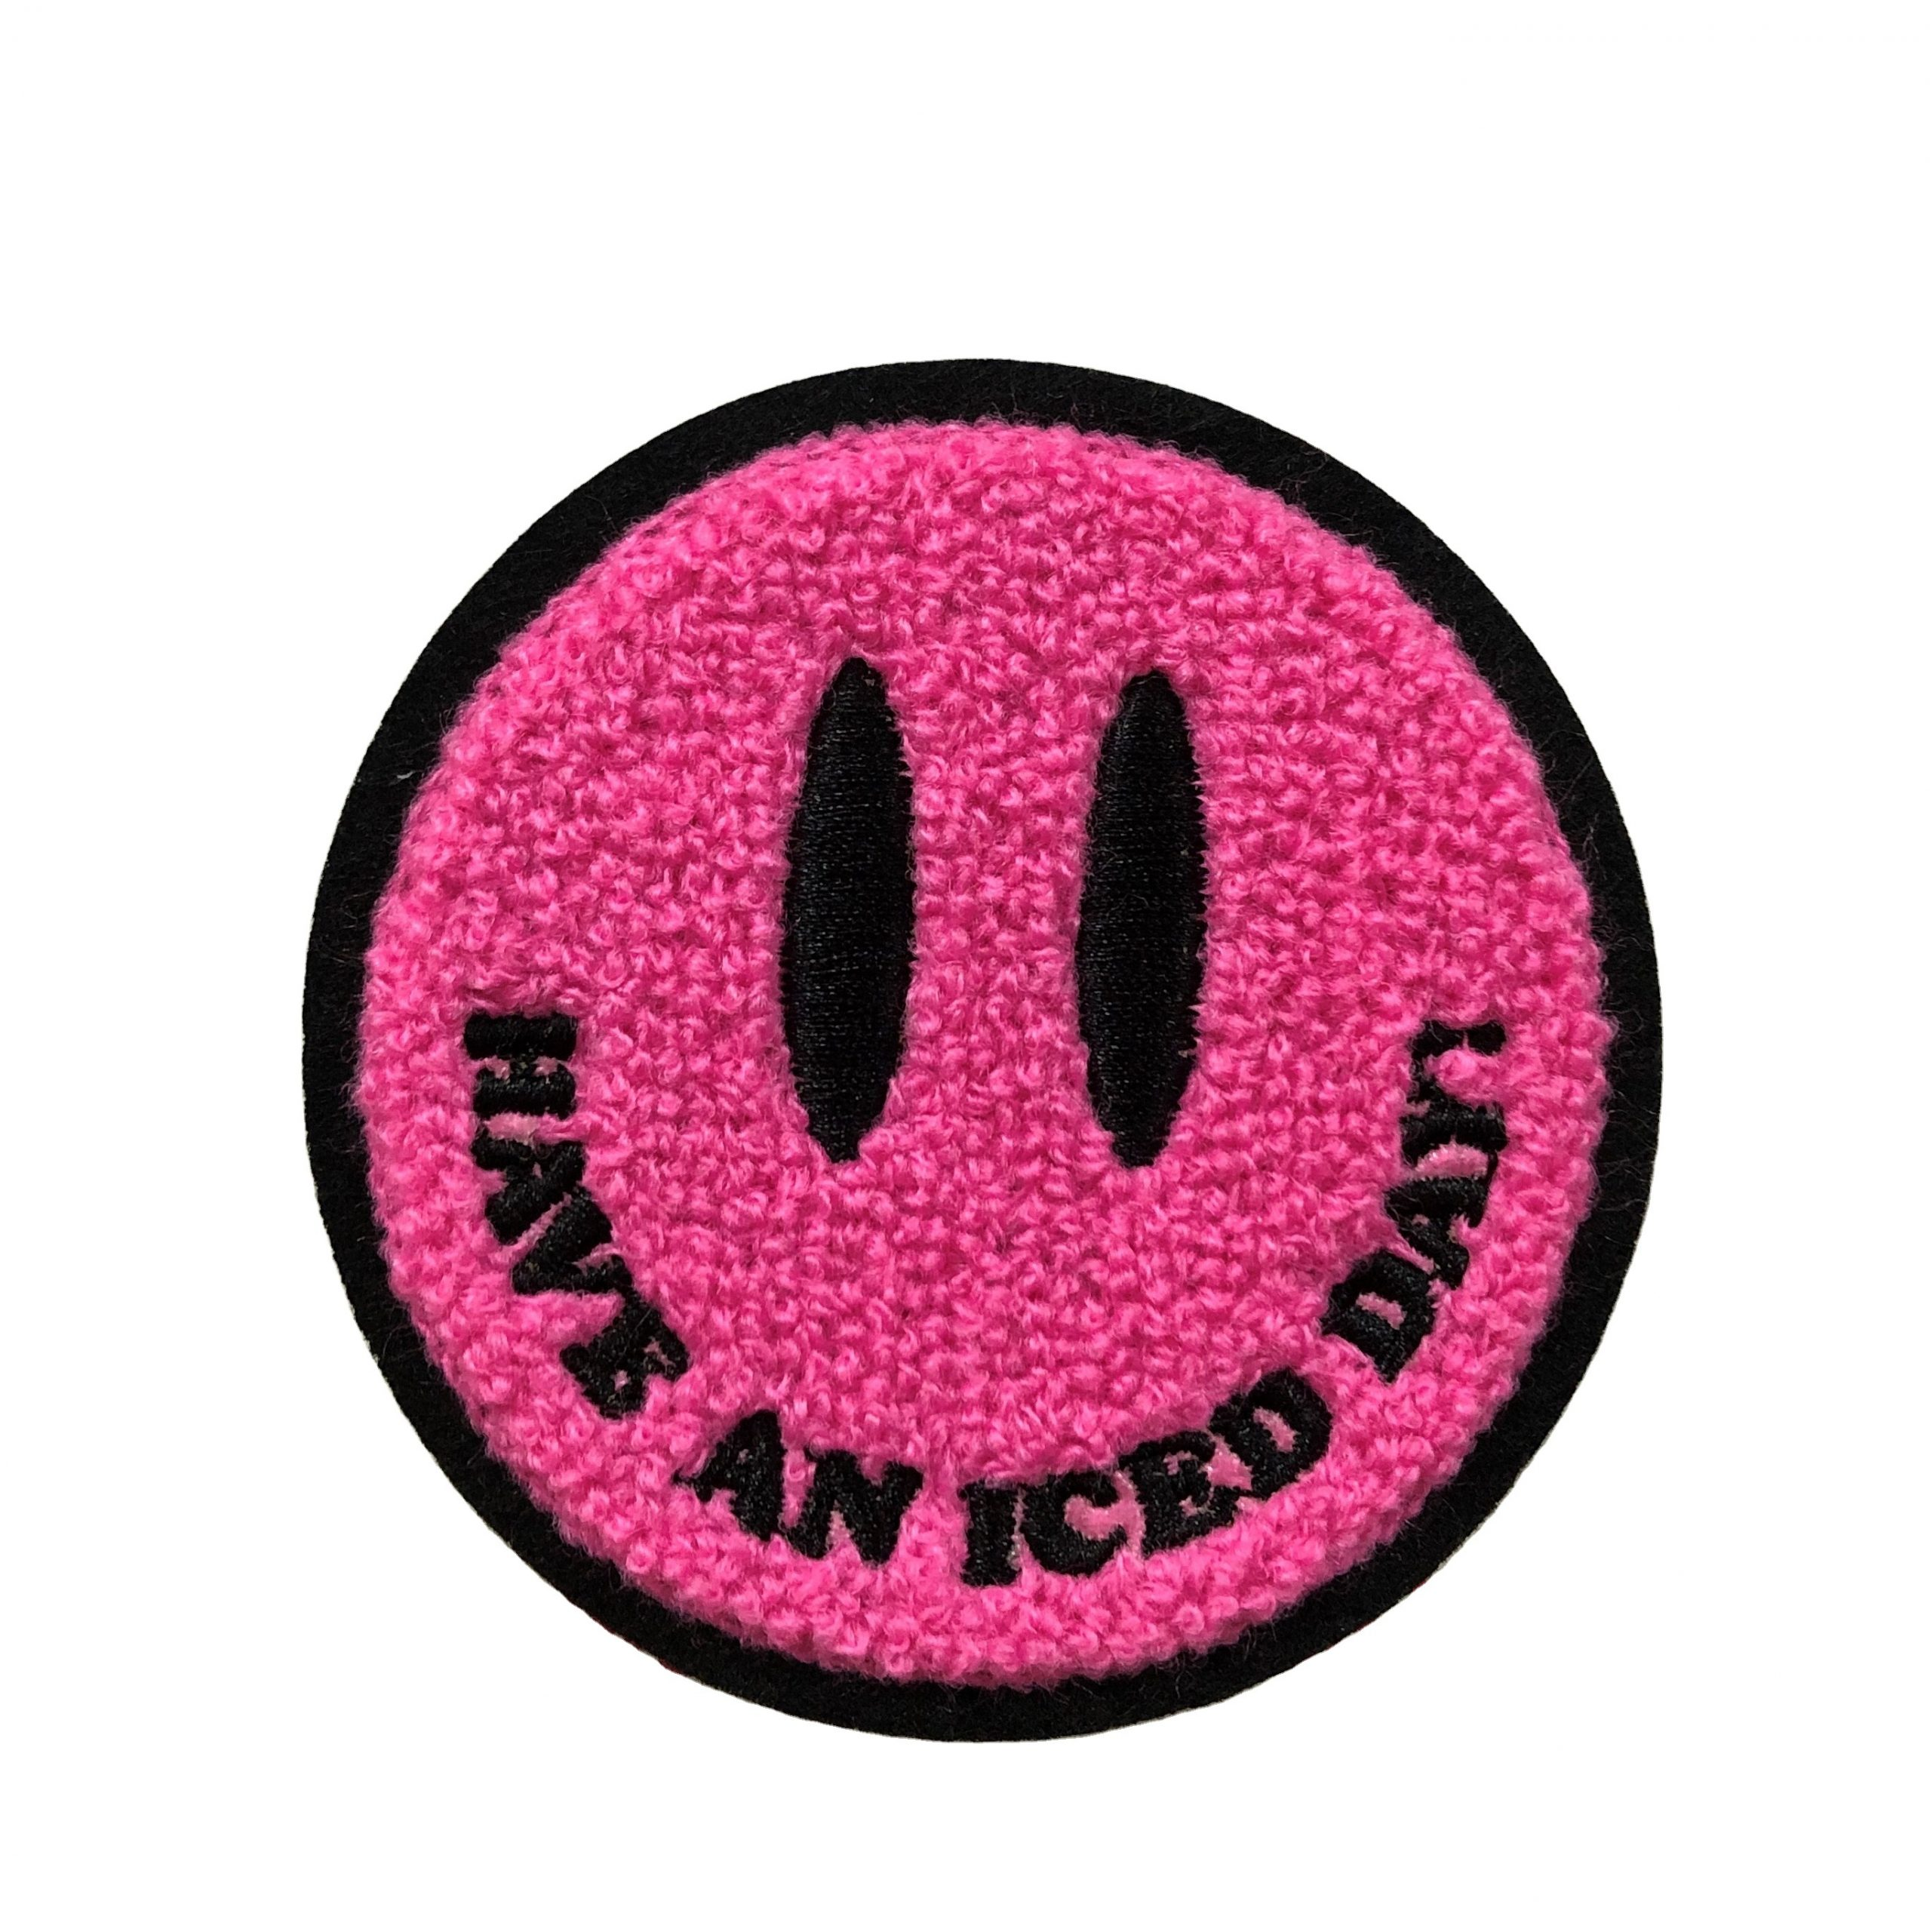 Custom design loving smile face embroidery iron on patch for clothing